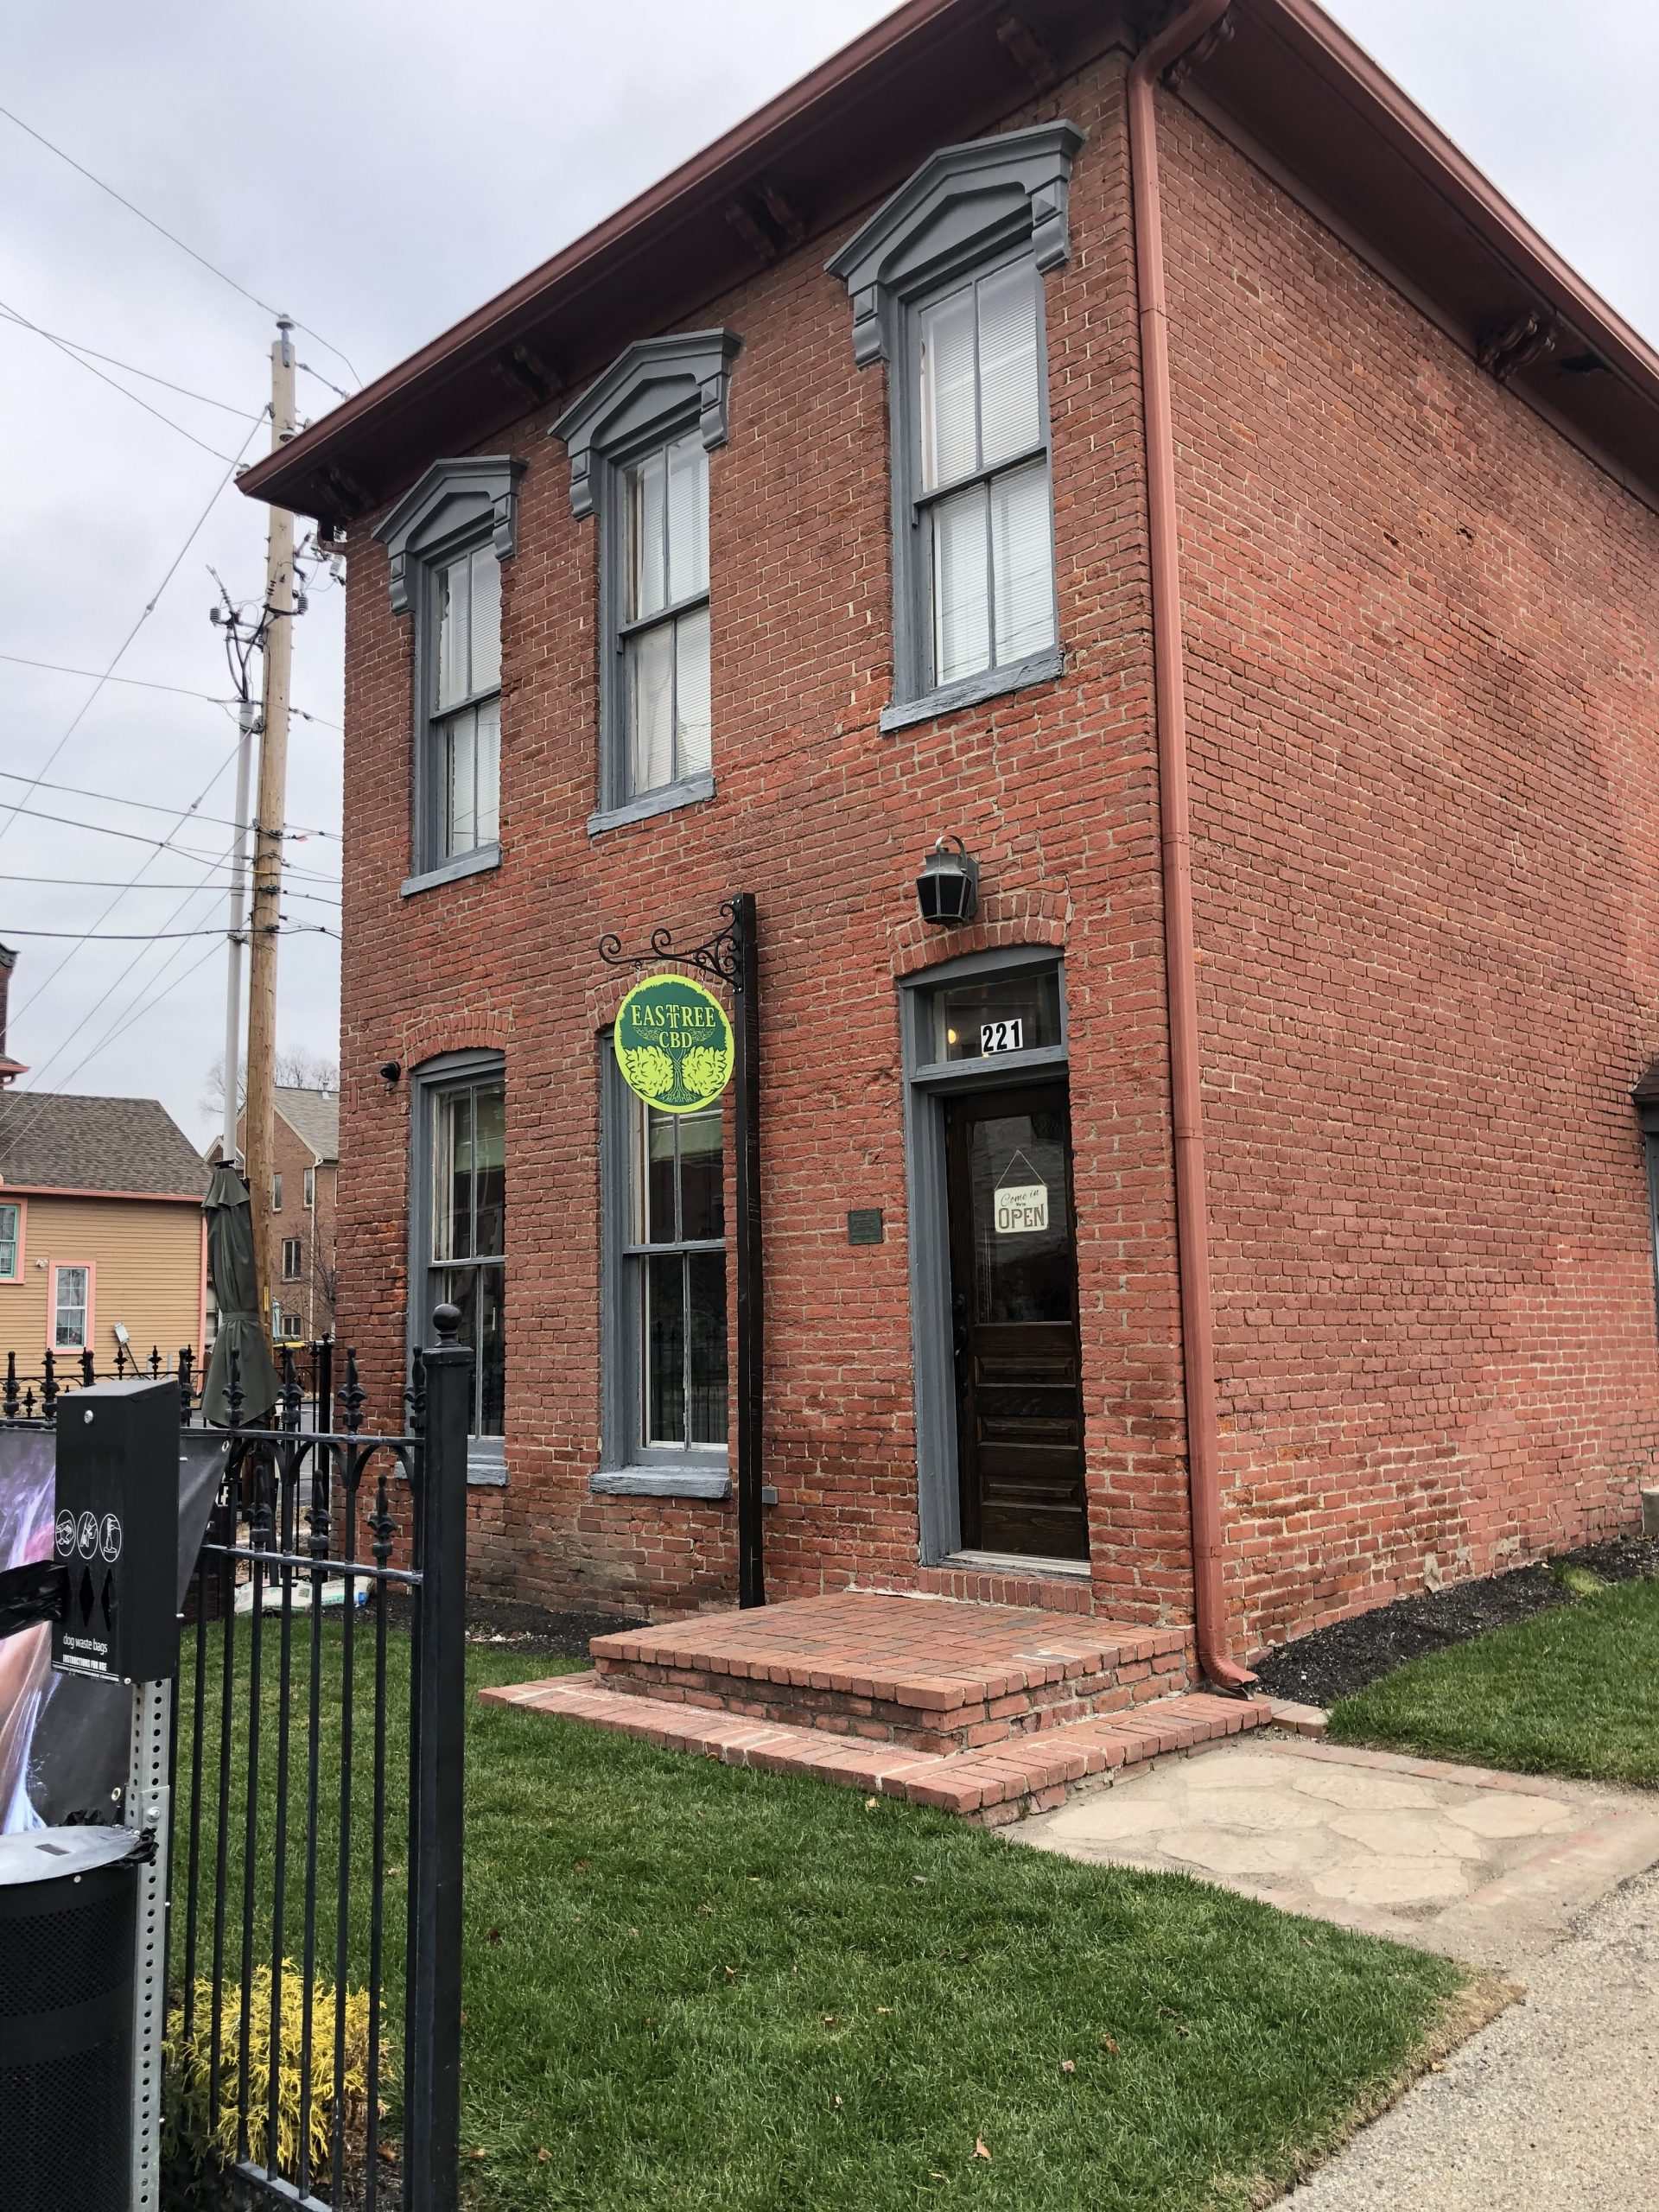 East Tree CBD Dispensary Store Front located at 221 N. East Street, Indianapolis, IN. 46204